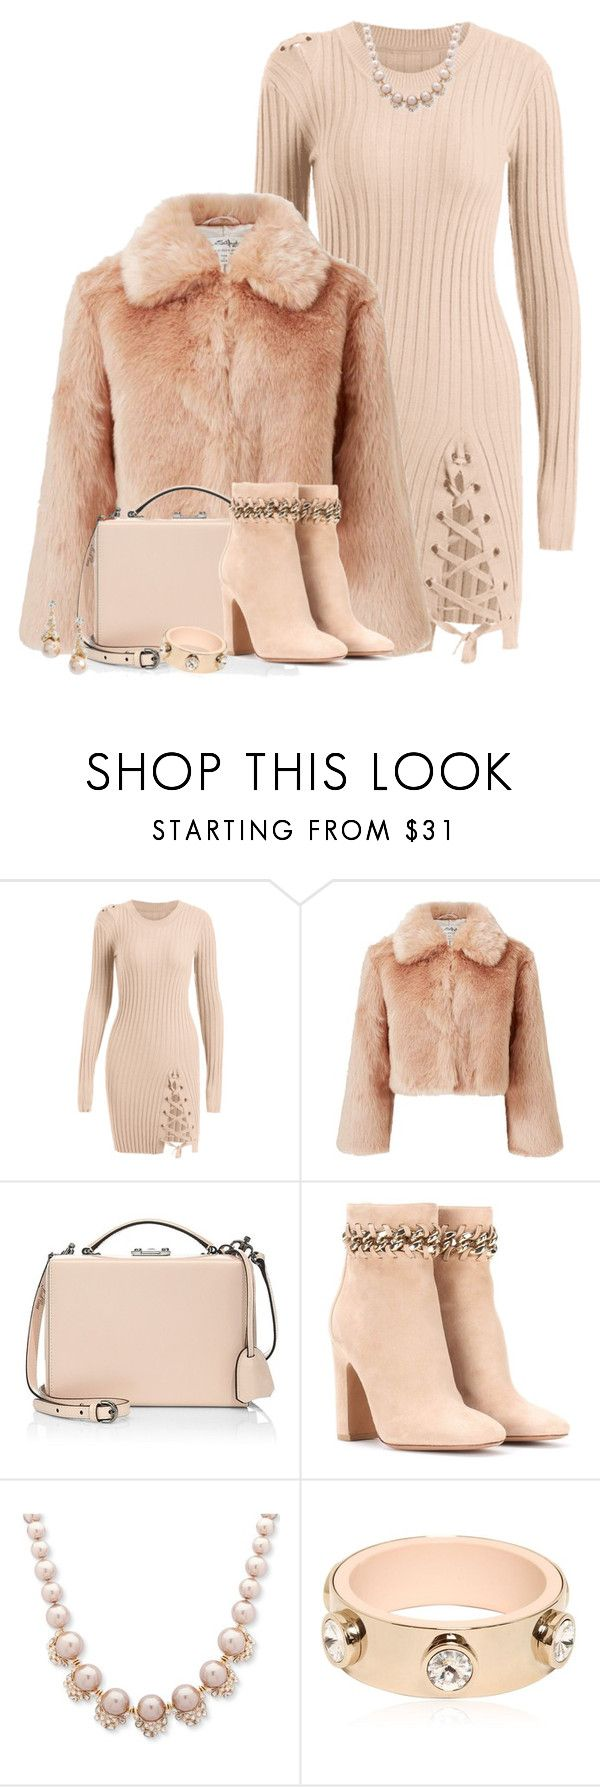 """Peach Fuzz"" by sharonbeach ❤ liked on Polyvore featuring Miss Selfridge, Mark Cross, Valentino, Givenchy and fuzzy"